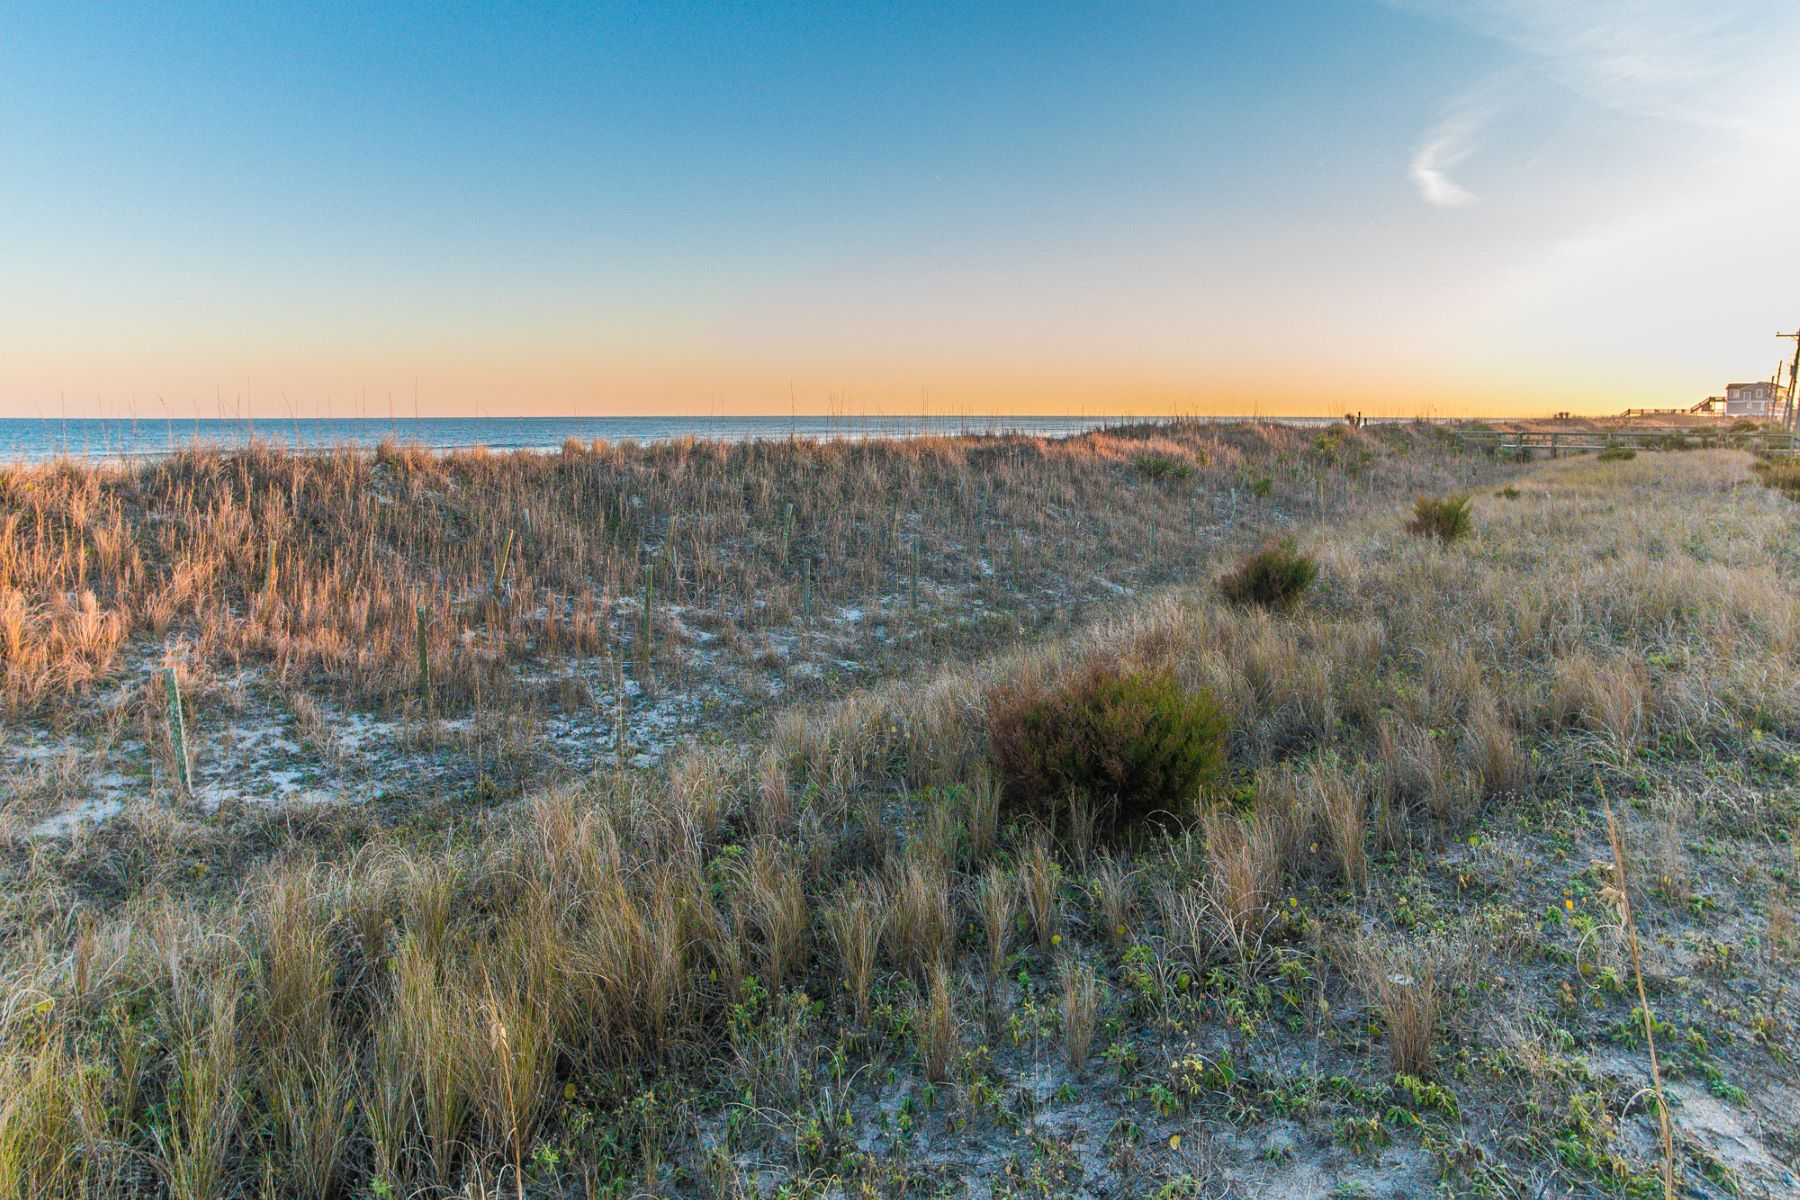 Land for Sale at Pristine Waterfront Lot on South End of Island Lot 3 Ocean Blvd, Topsail Beach, North Carolina, 28445 United States